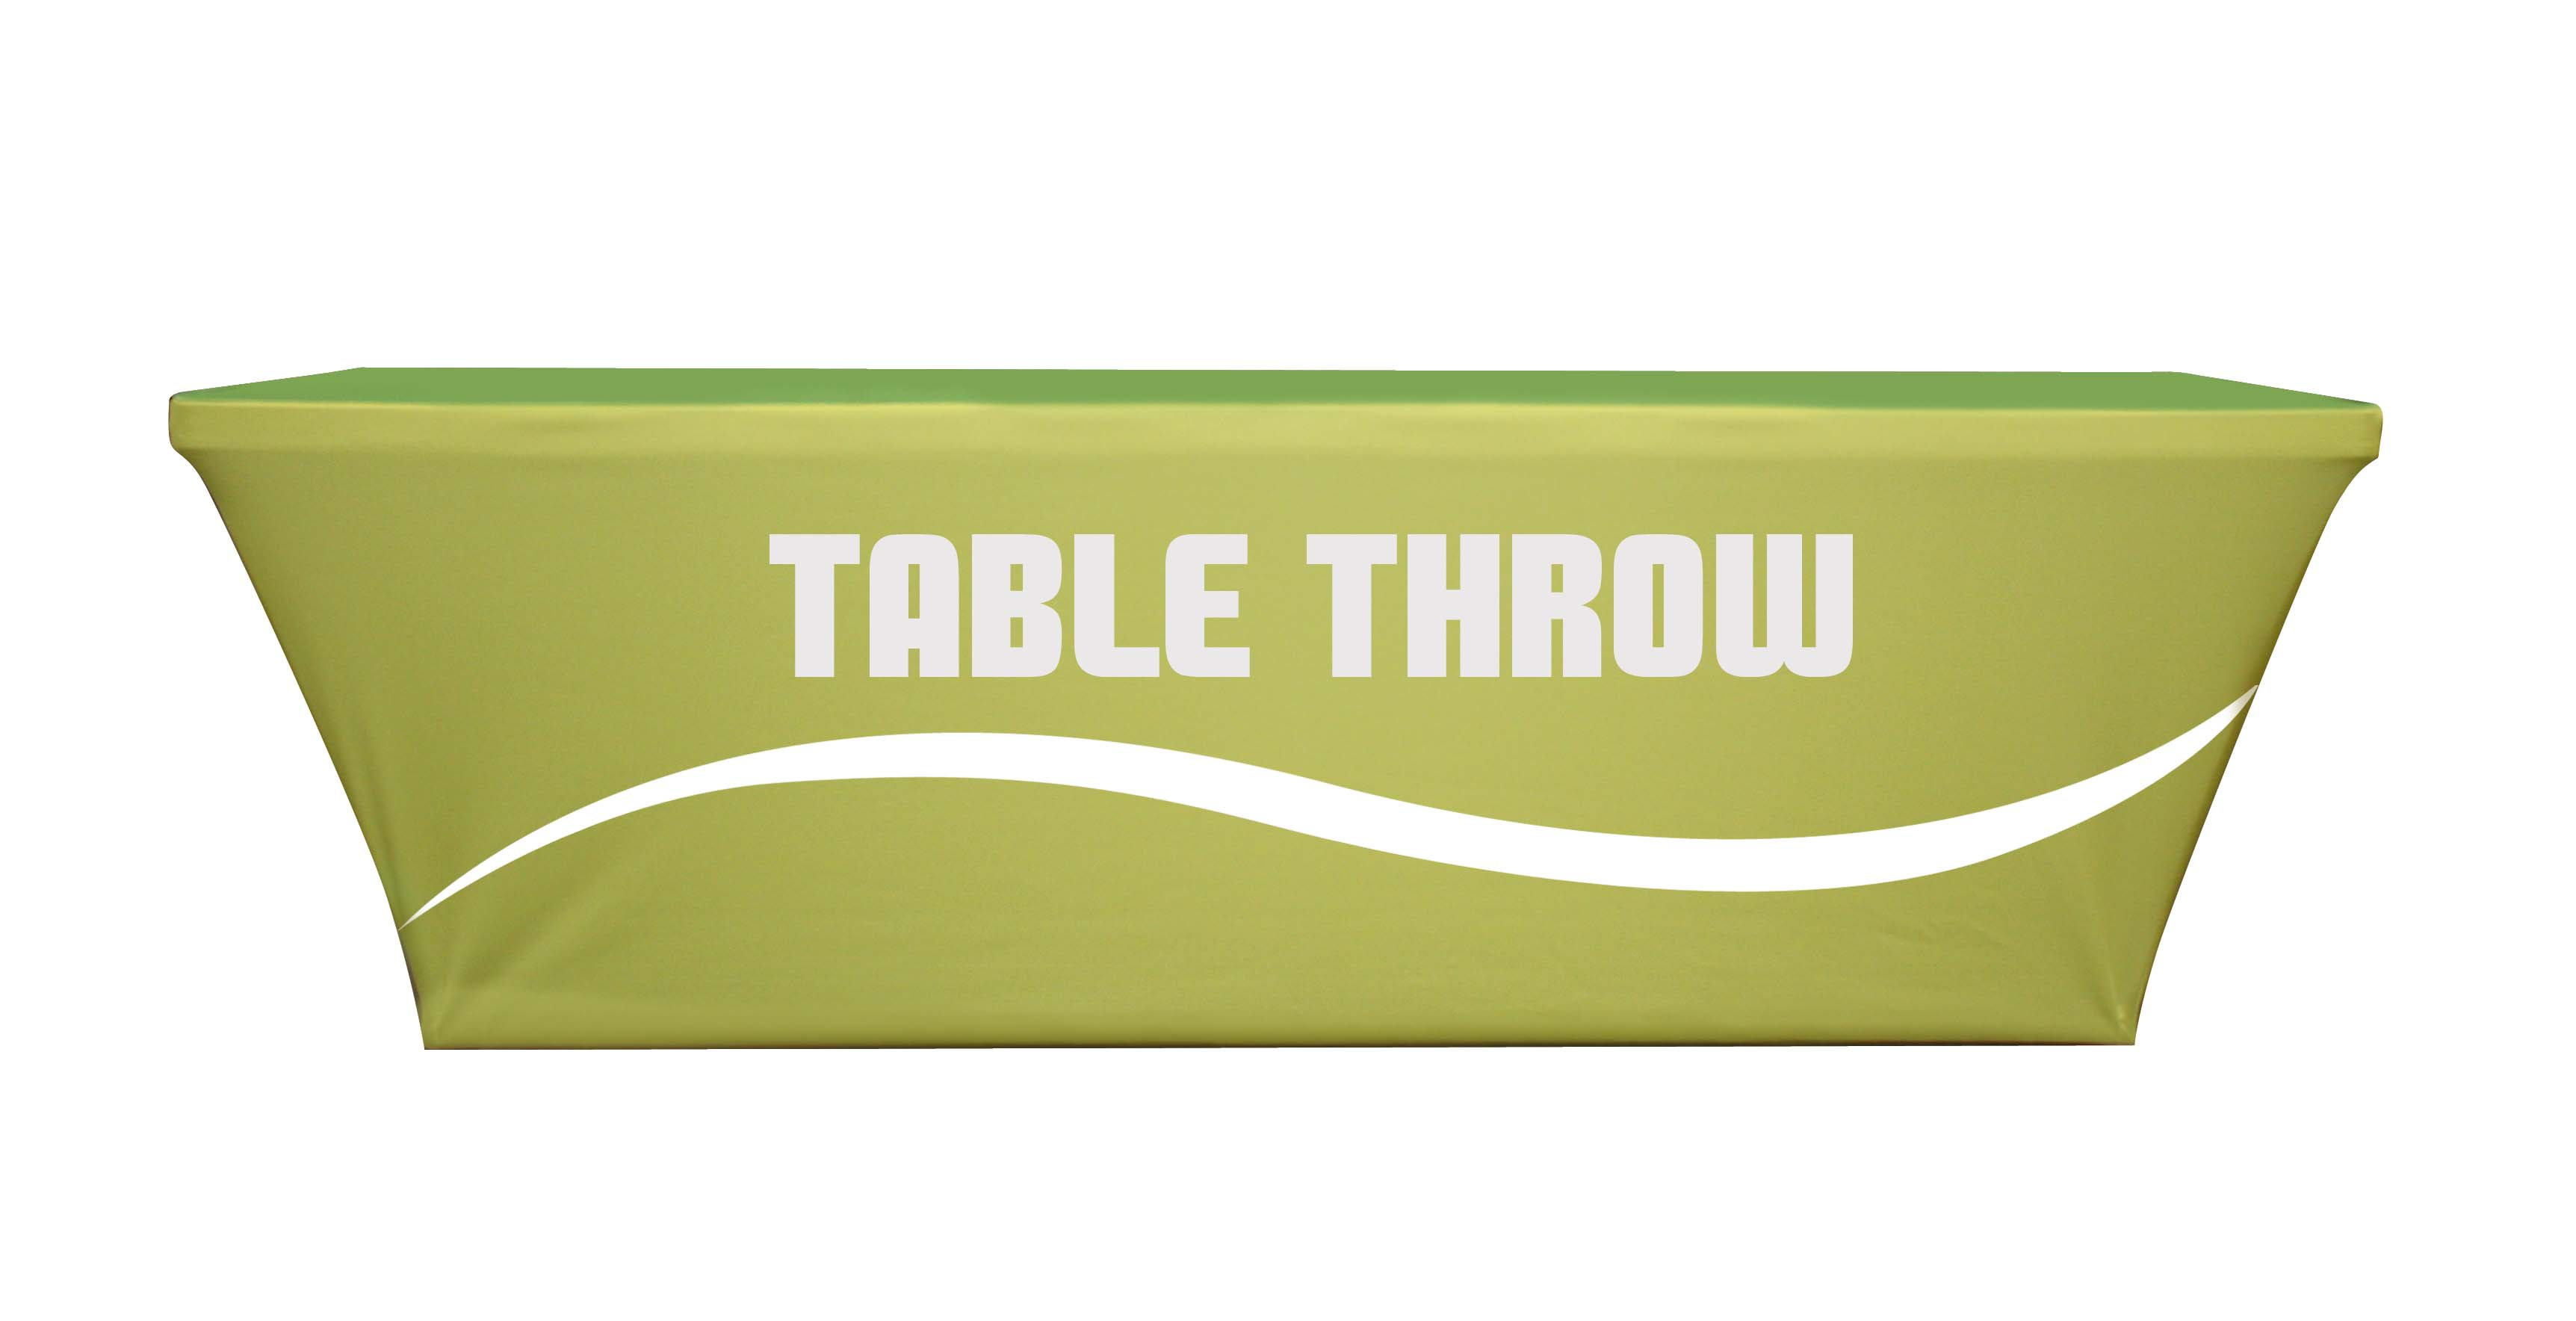 Table covers throws franklin sign company for Table th row